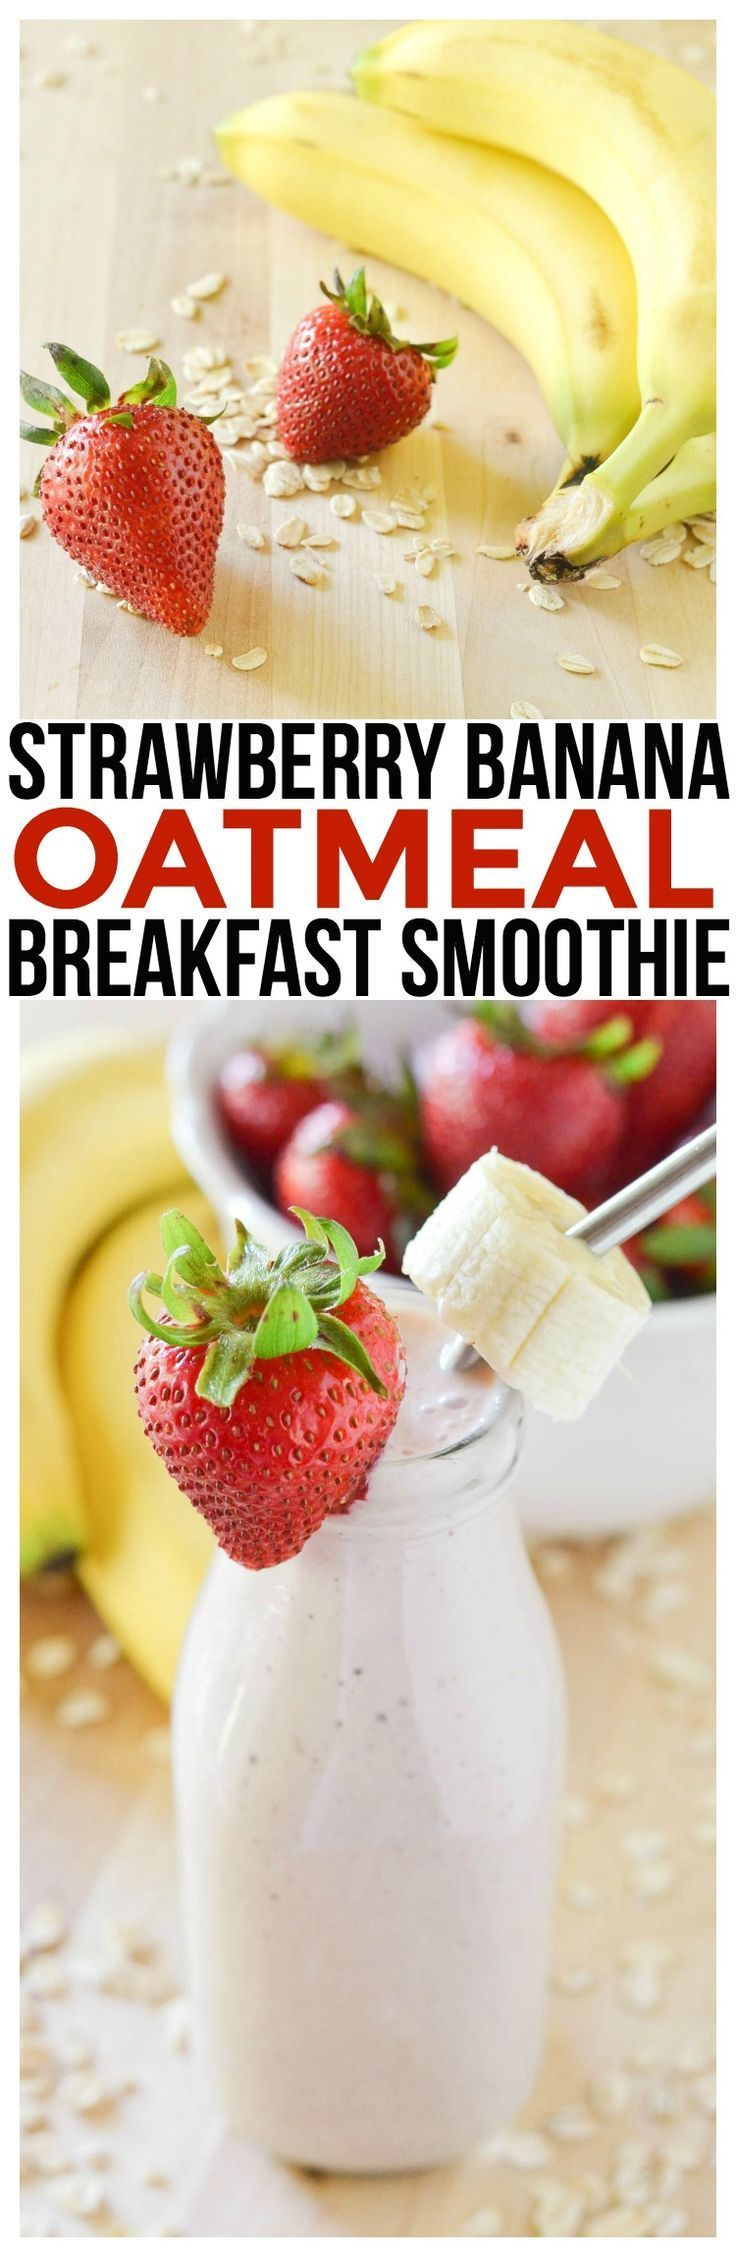 Make this strawberry banana oatmeal smoothie breakfast recipe. One of the easiest smoothie recipes for kids and adults. Quick and easy breakfast recipe! via /KnowYourProduce/